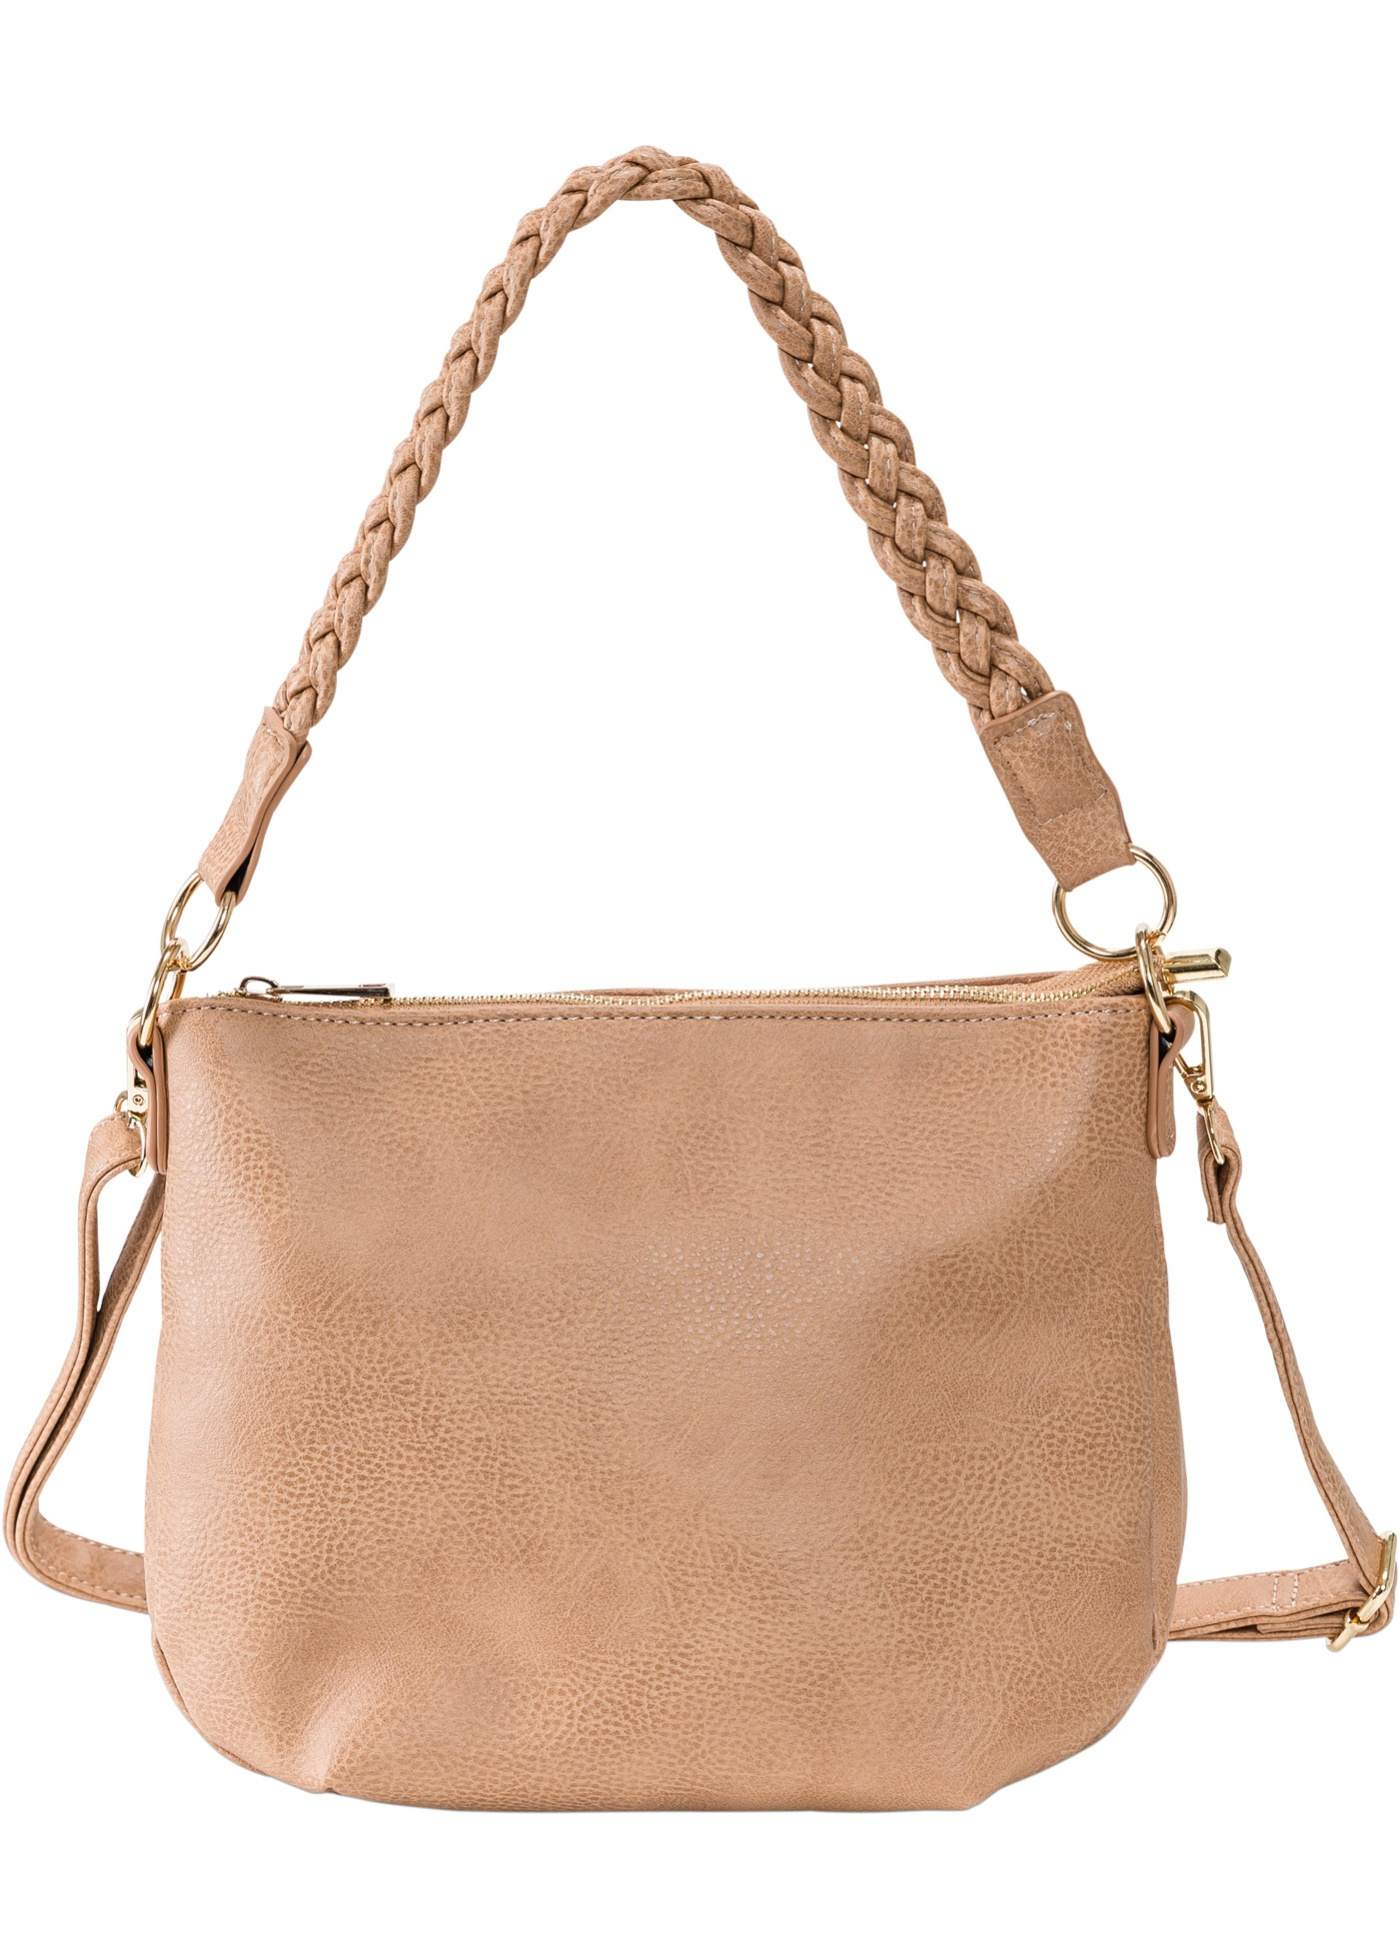 Borsa a tracolla con manico intrecciato (Marrone) - bpc bonprix collection